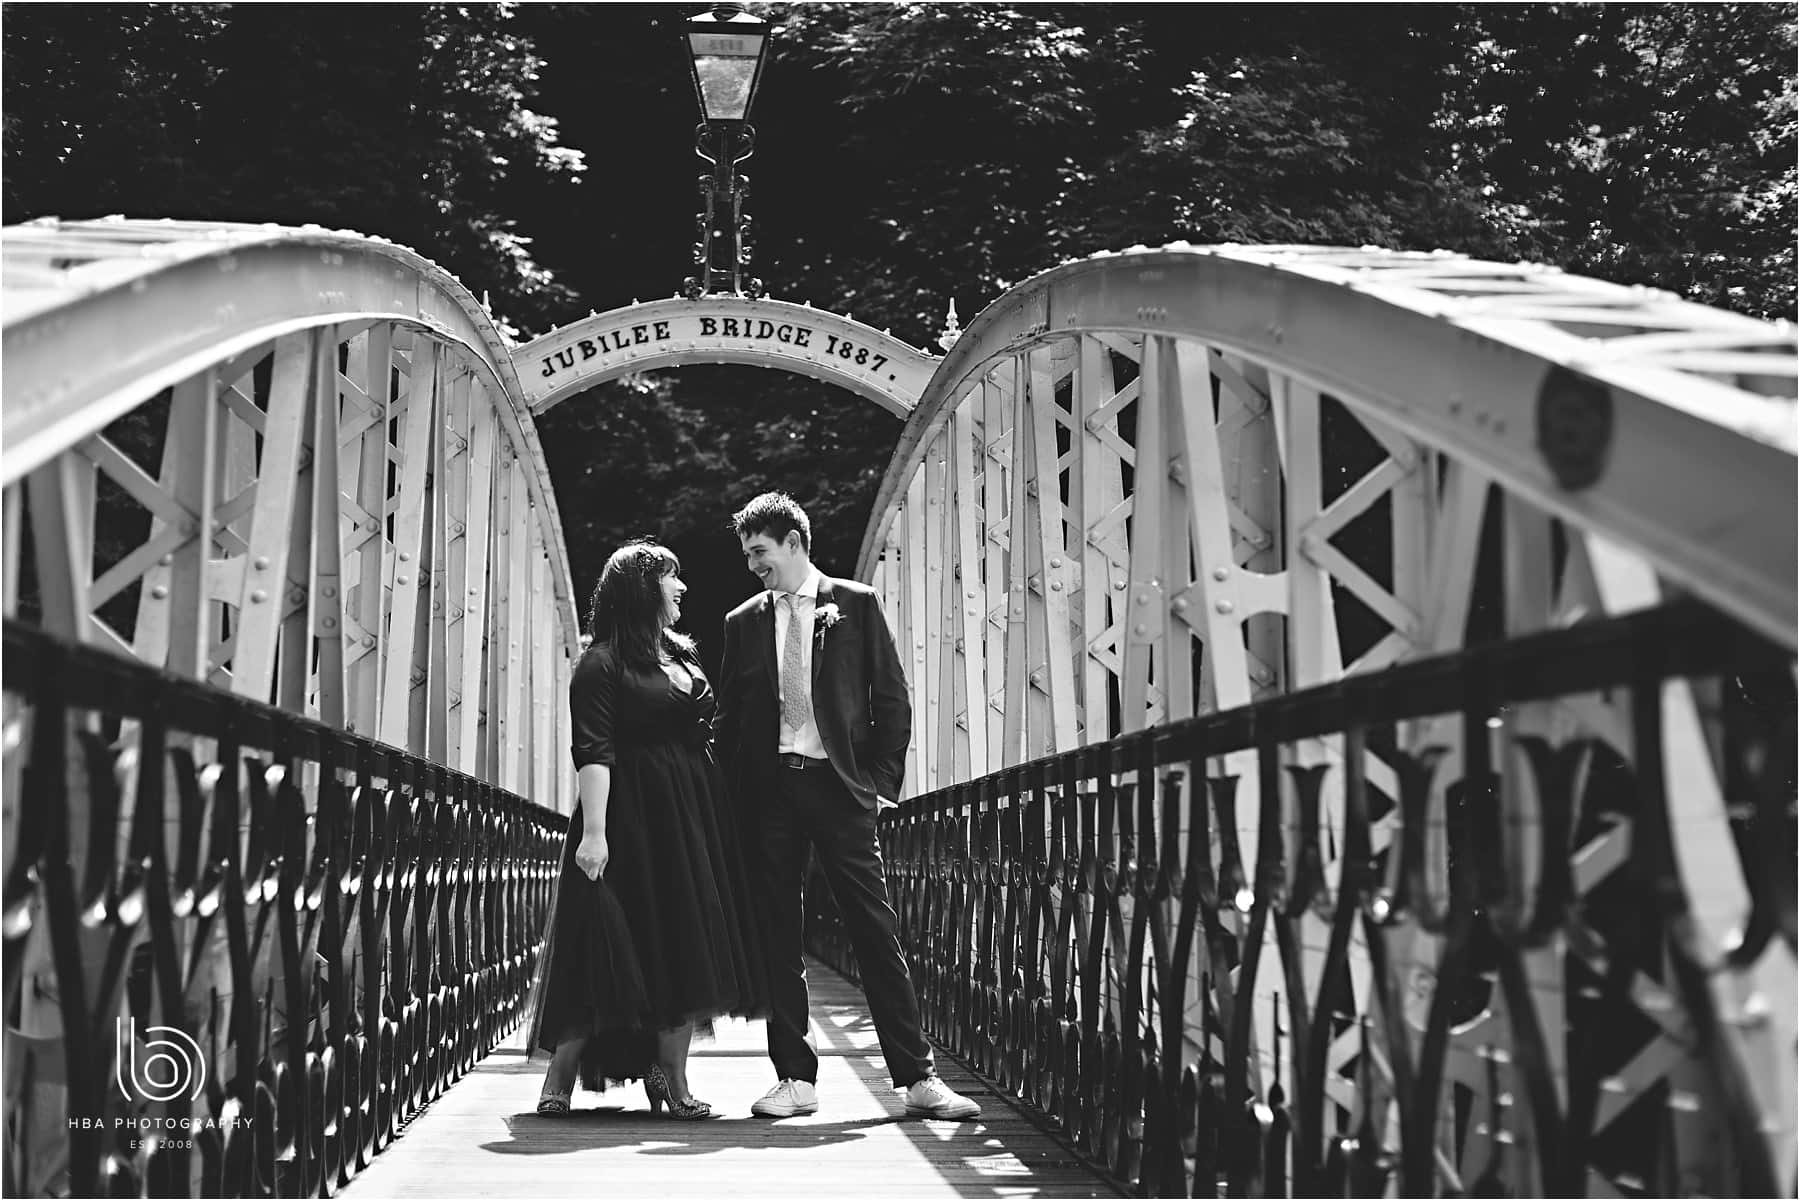 the bride & groom on the bridge